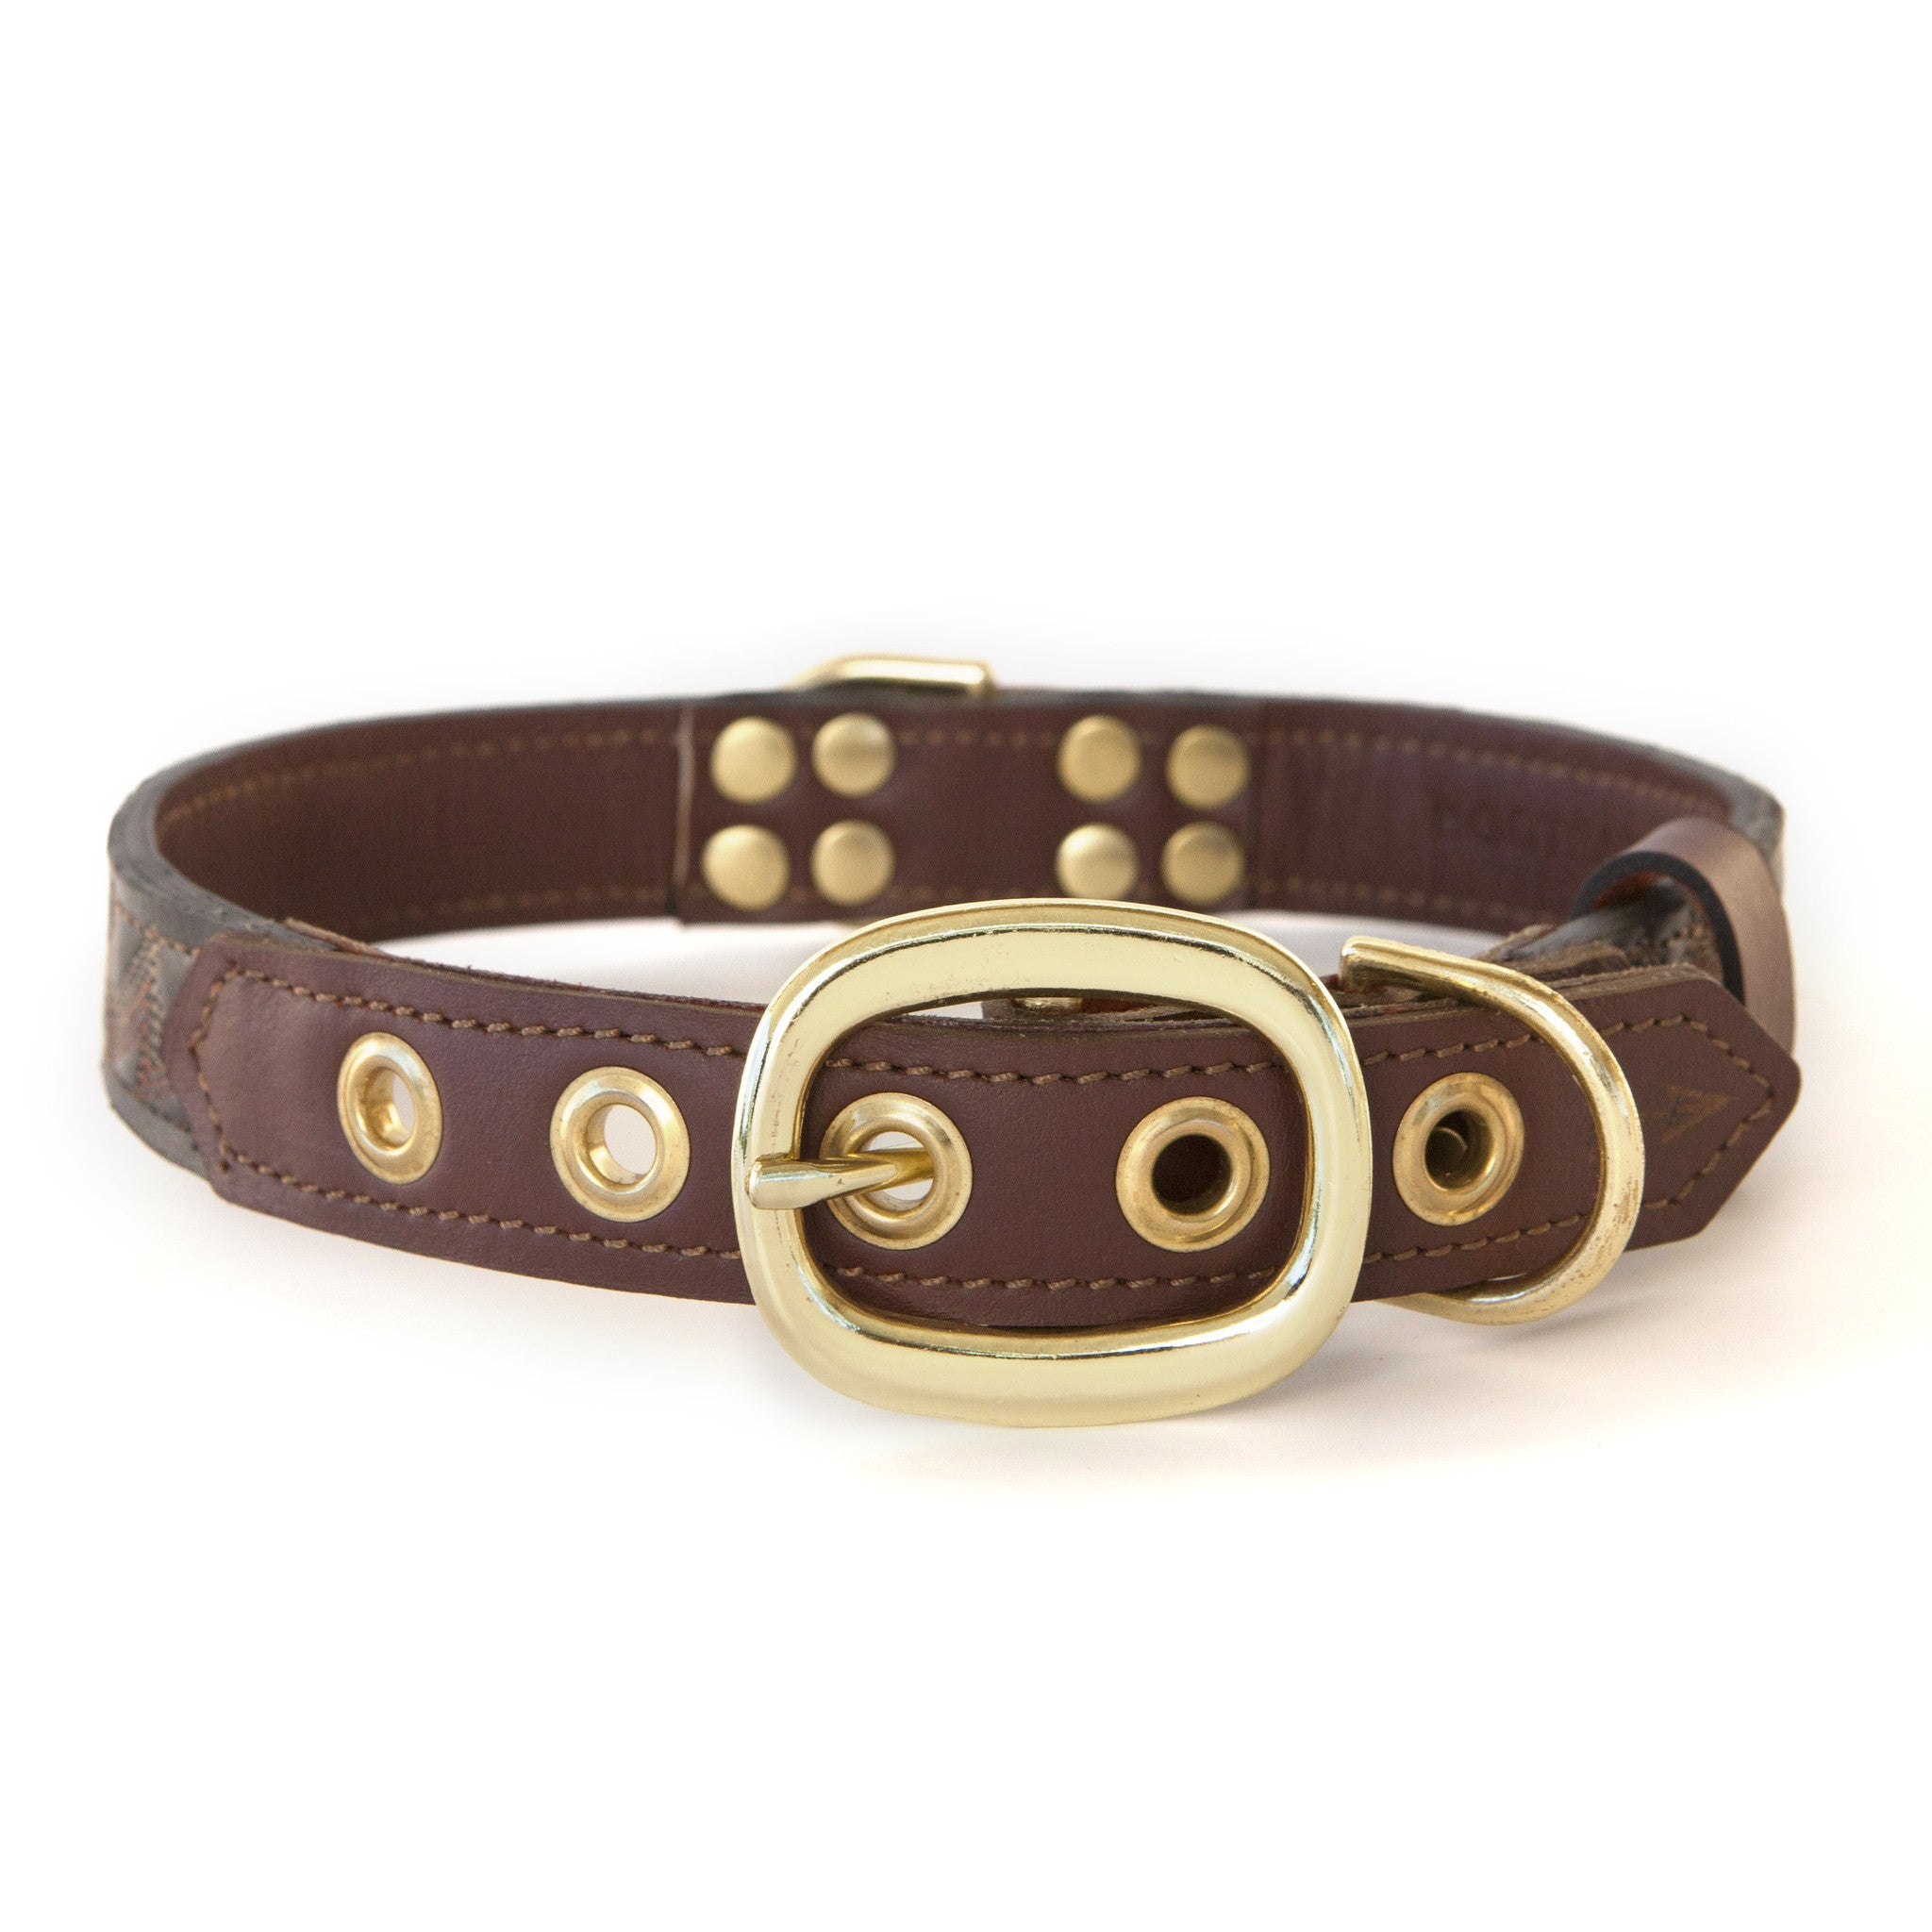 Mahogany Brown Dog Collar with Dark Brown Leather + Tan/Light Rust Stitching (back view)